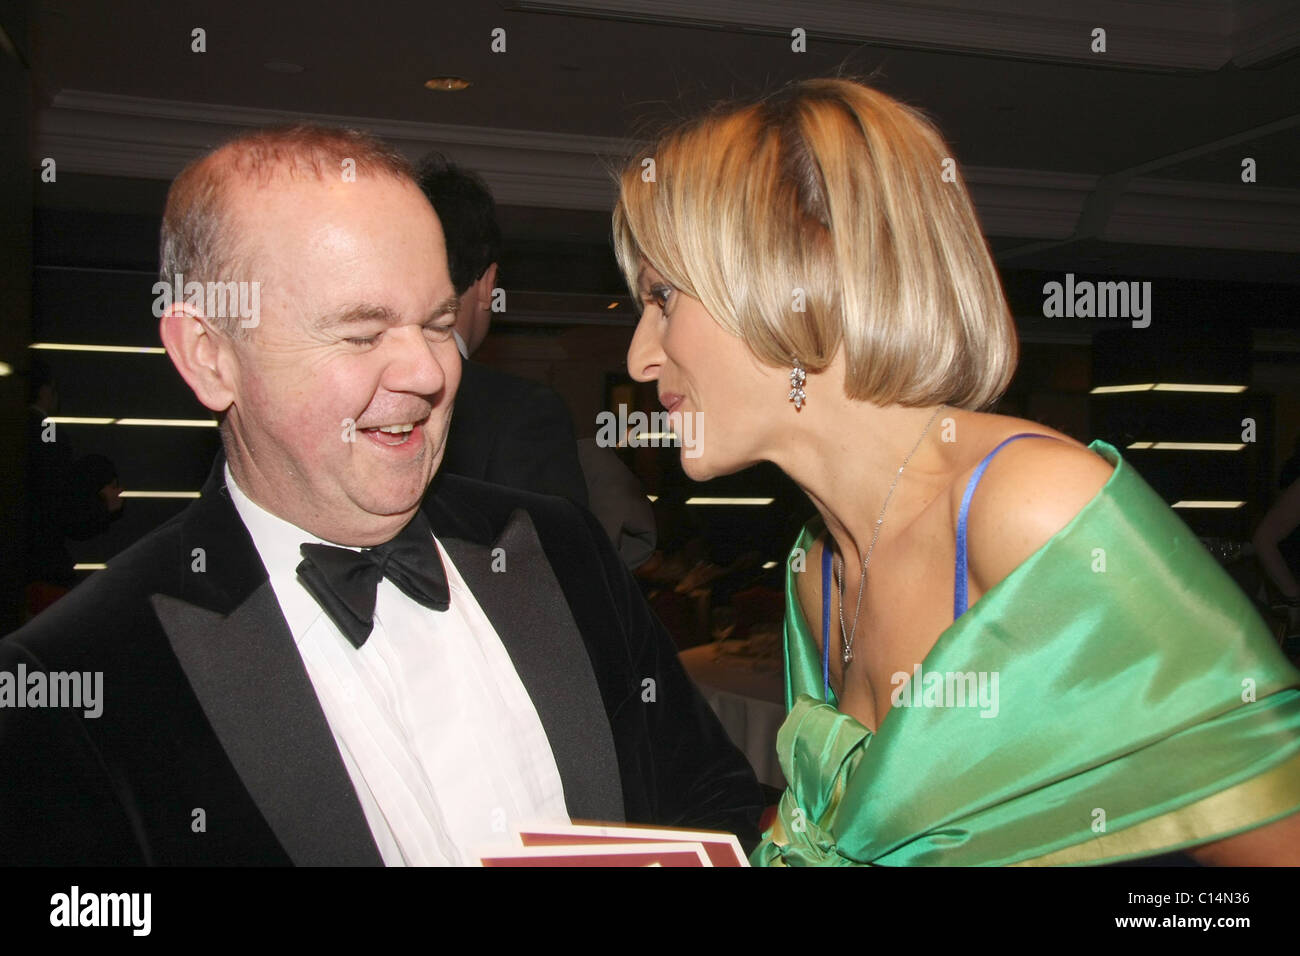 Emily Maitlis Wallpaper: Ian Hislop And Emily Hislop Stock Photos & Ian Hislop And